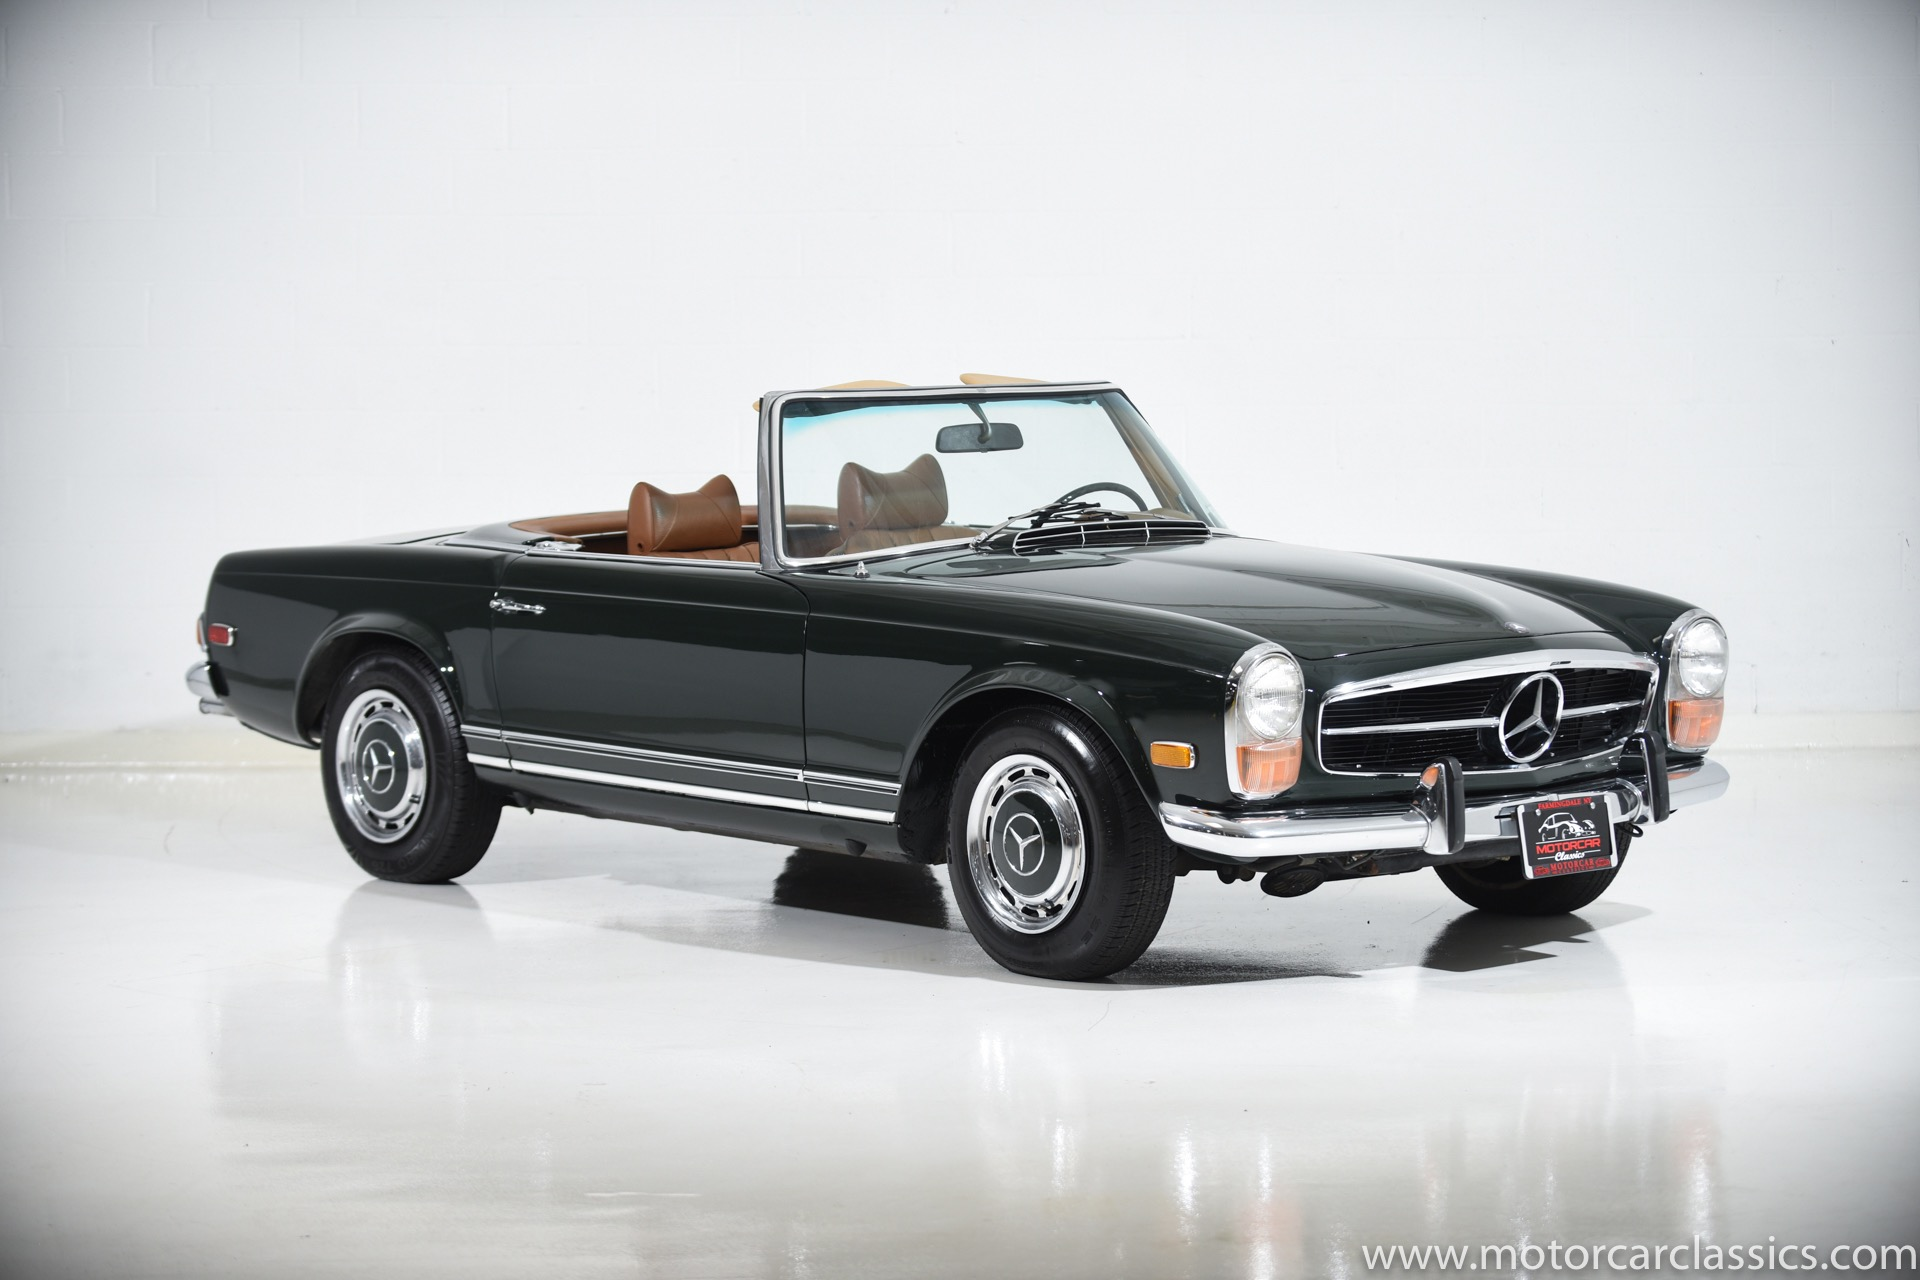 Used 1971 Mercedes Benz Sl Class 280sl For Sale 89 900 Motorcar